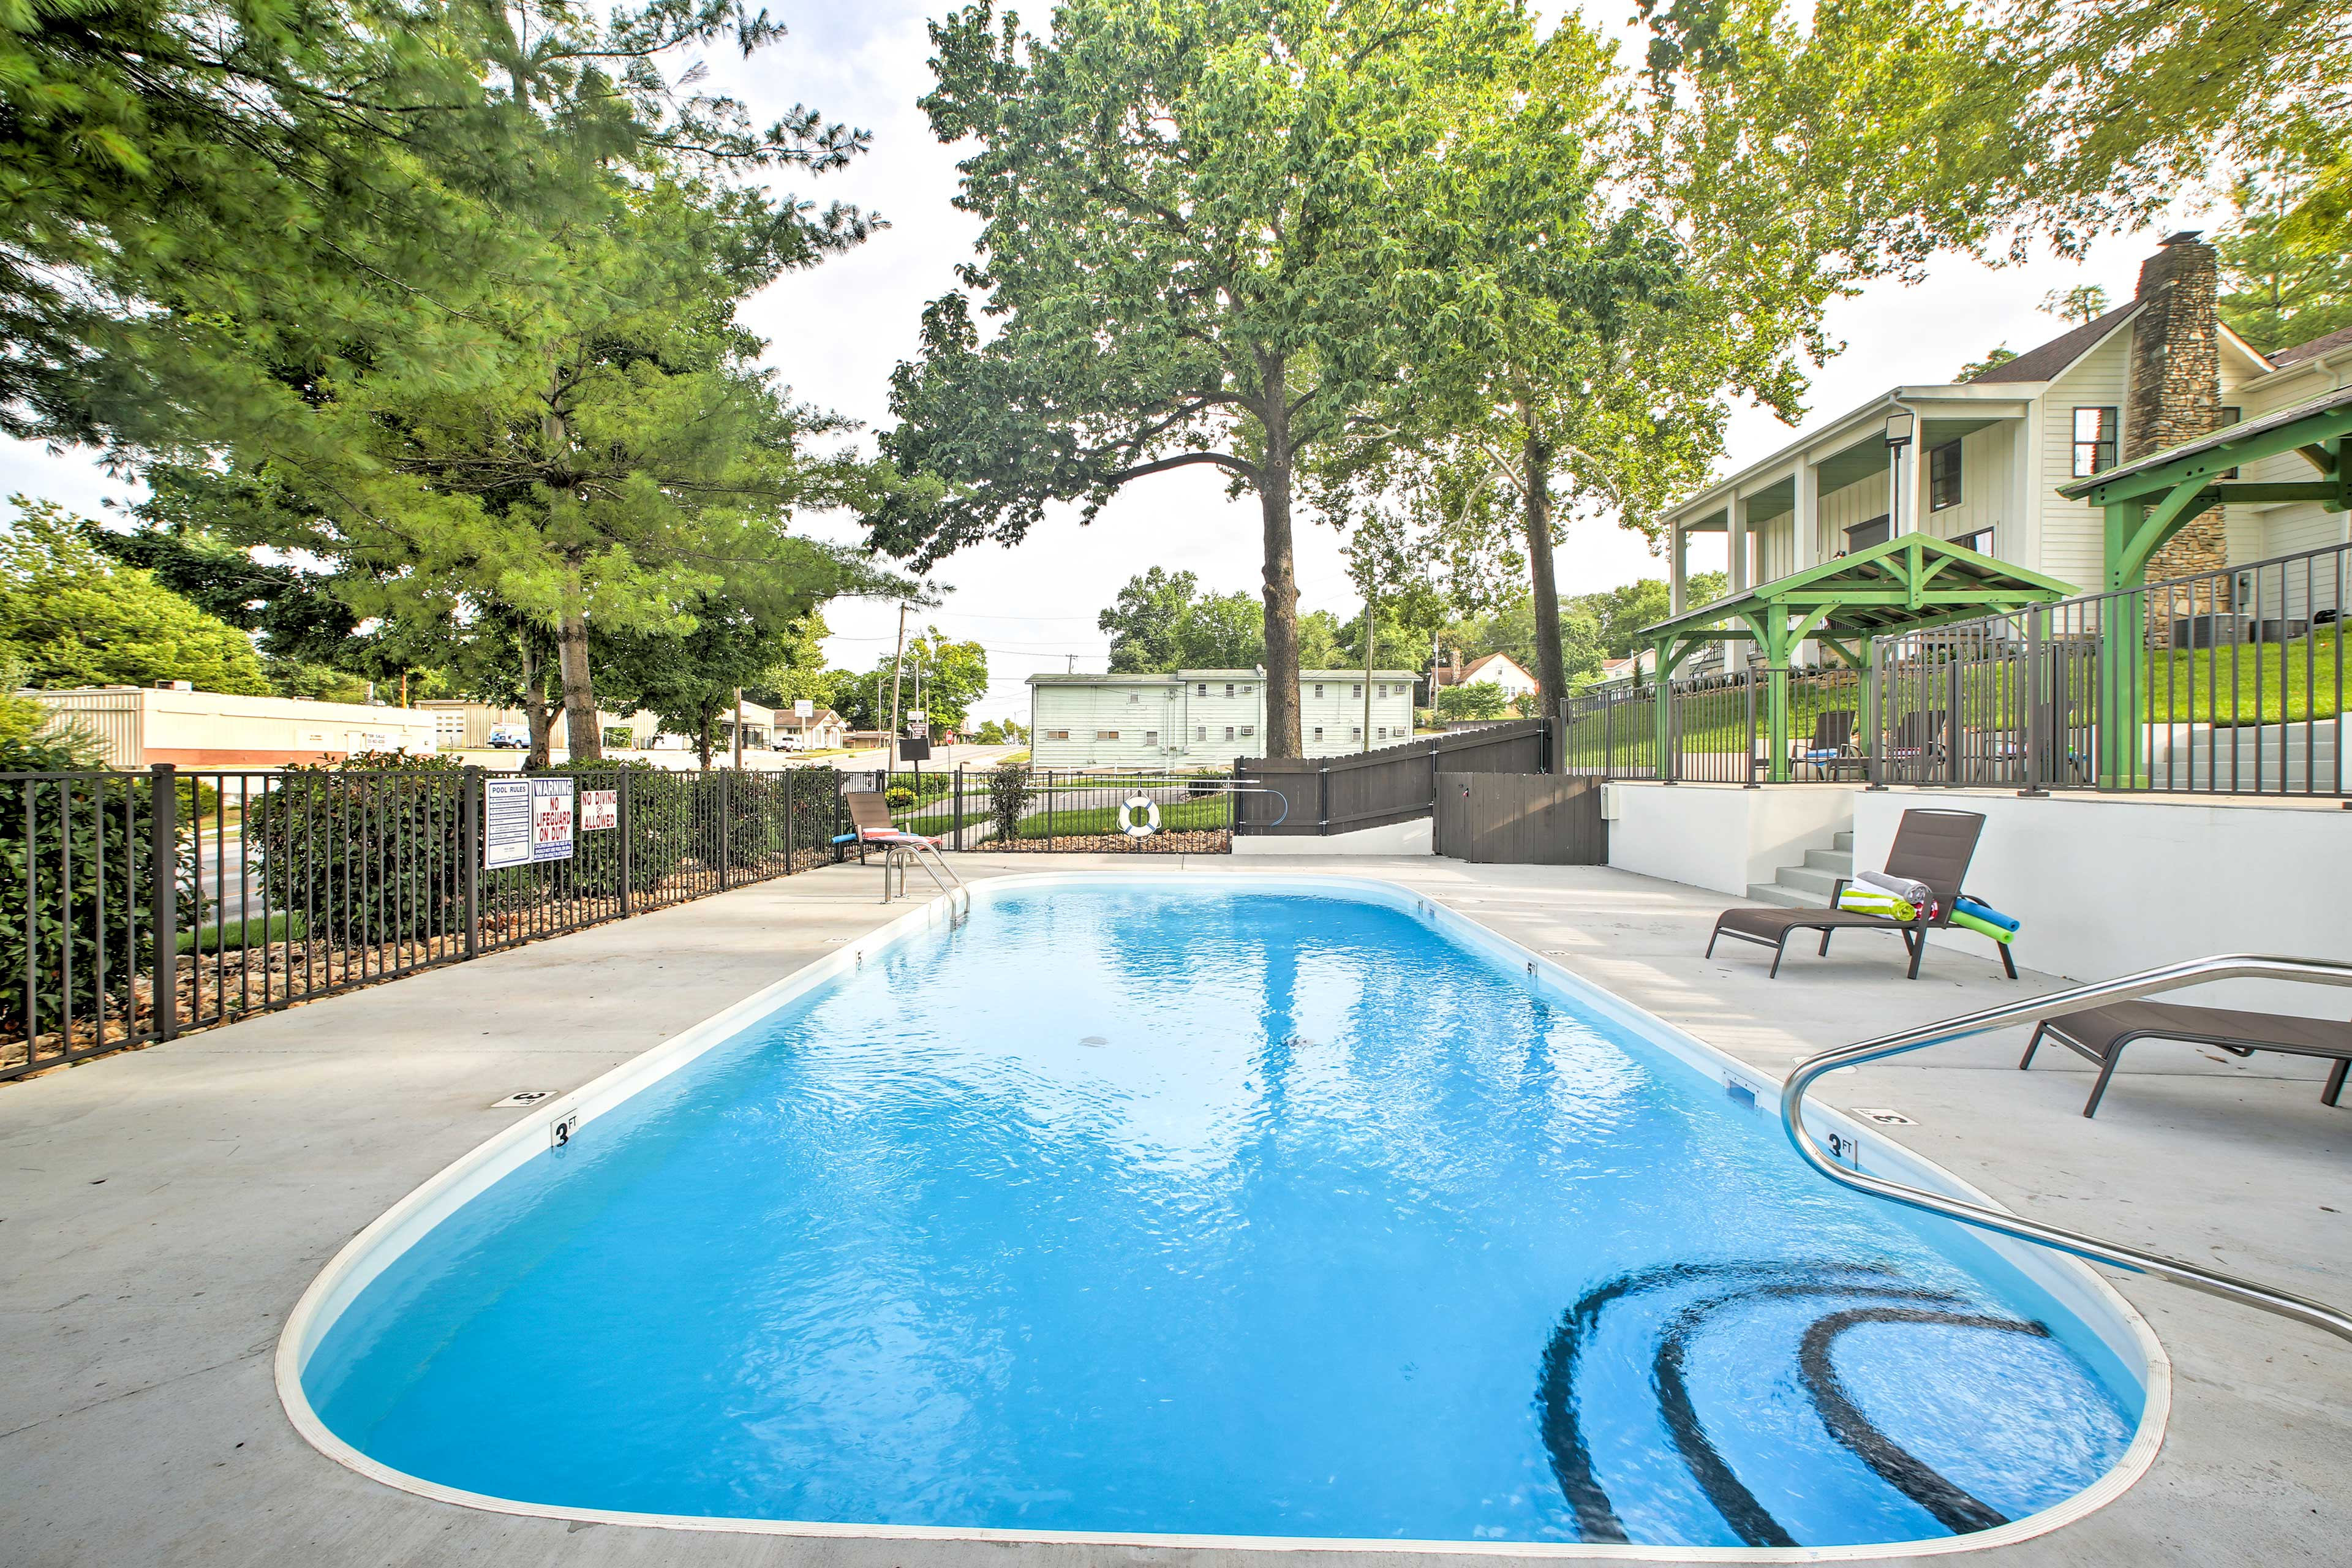 Your Branson holiday awaits at this charming vacation rental!